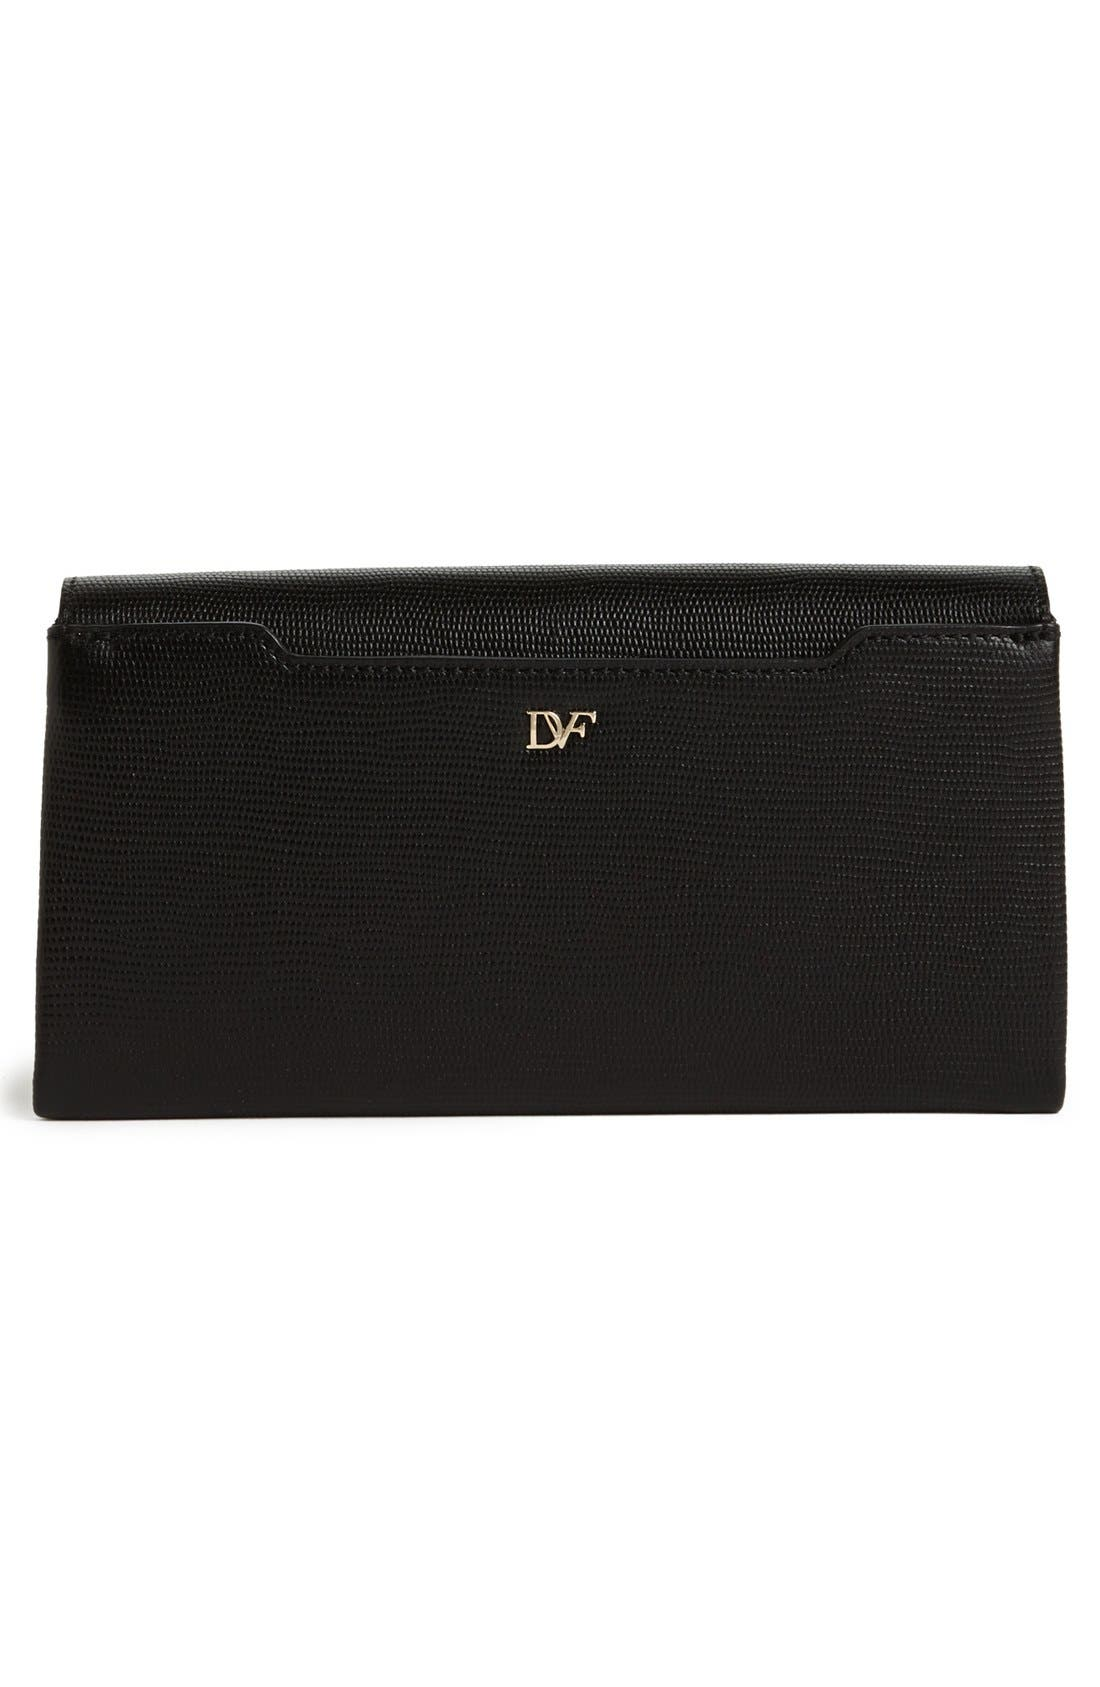 Alternate Image 3  - Diane von Furstenberg '440' Leather Envelope Clutch